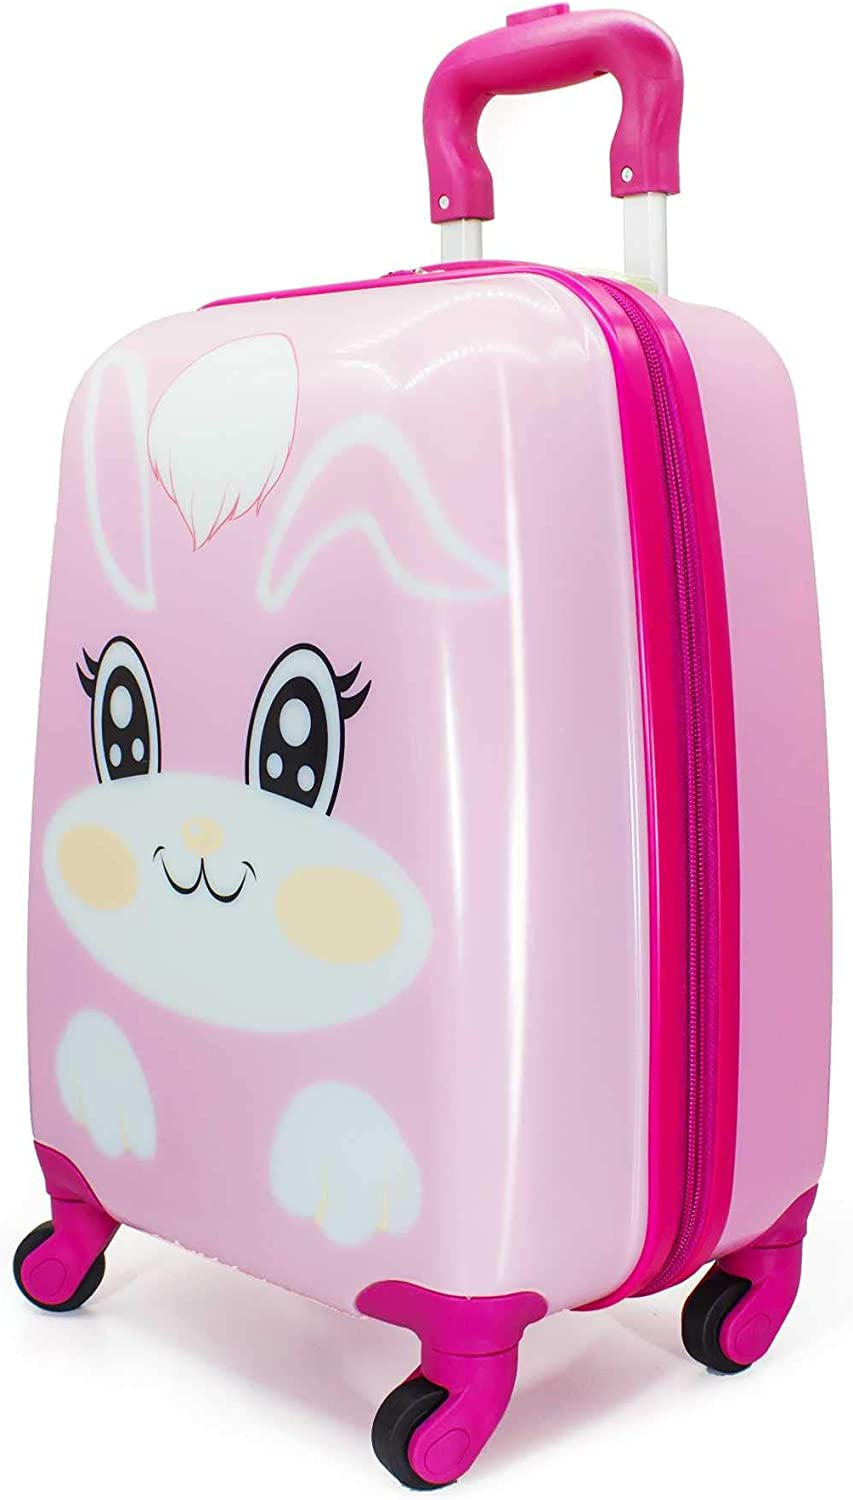 MOREFUN Kids Luggage Rolling Kids Carry on Luggage Spinner Butterfly Girls Travel Suitcase Hard Shell with Wheels